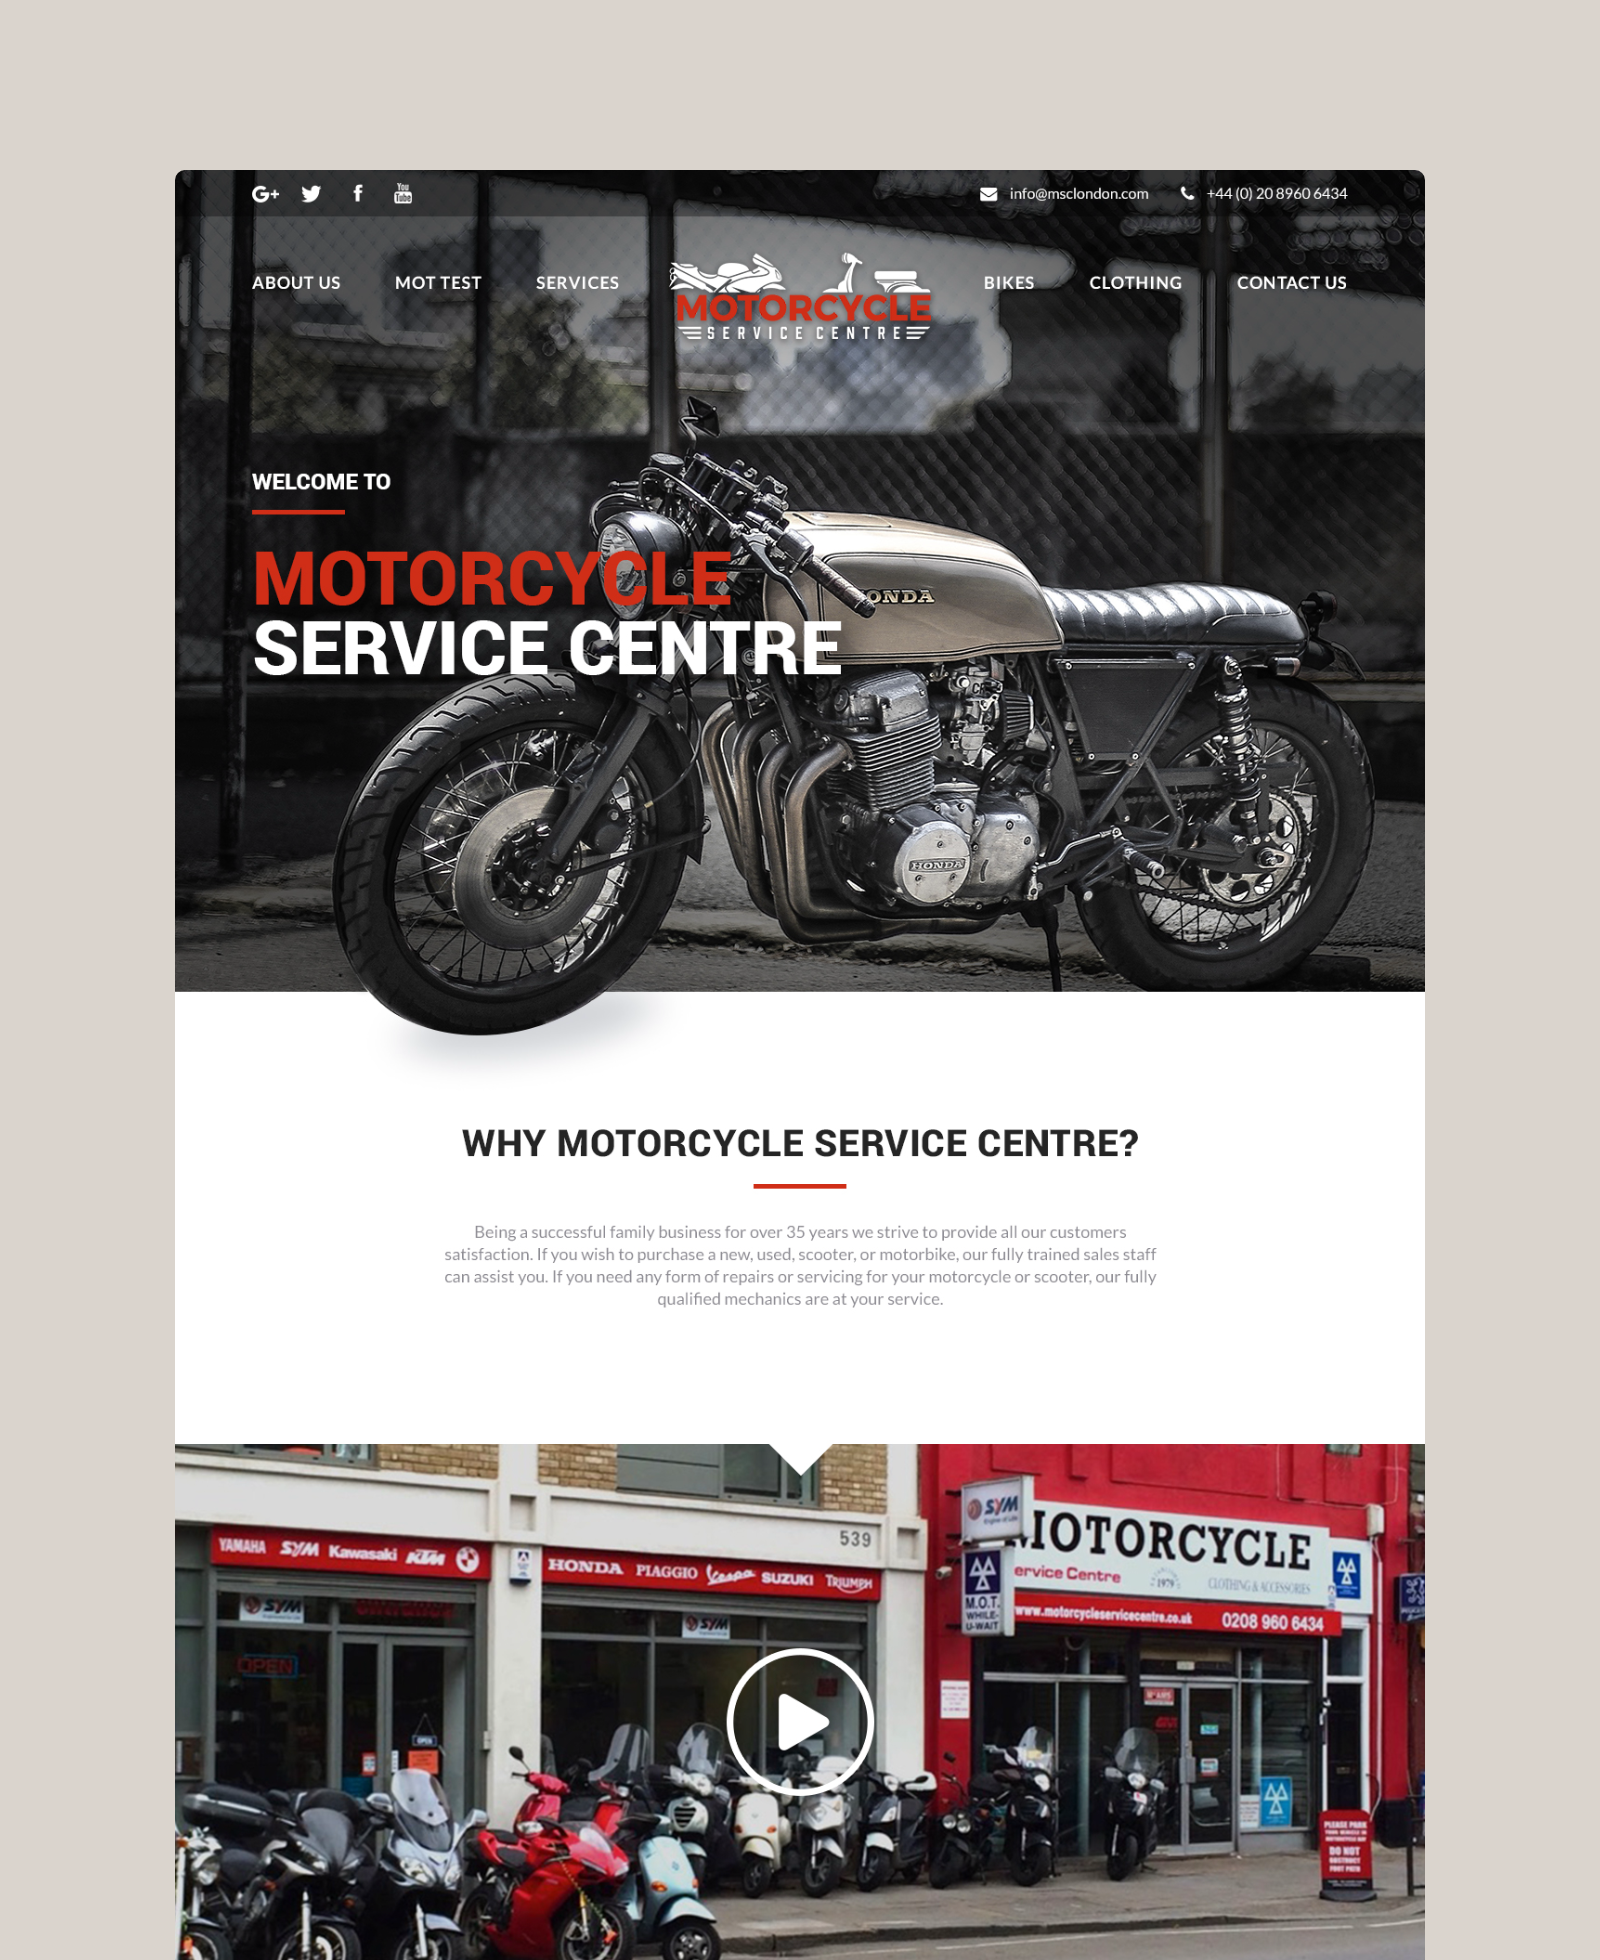 Motorcycle Service Centre Home Page